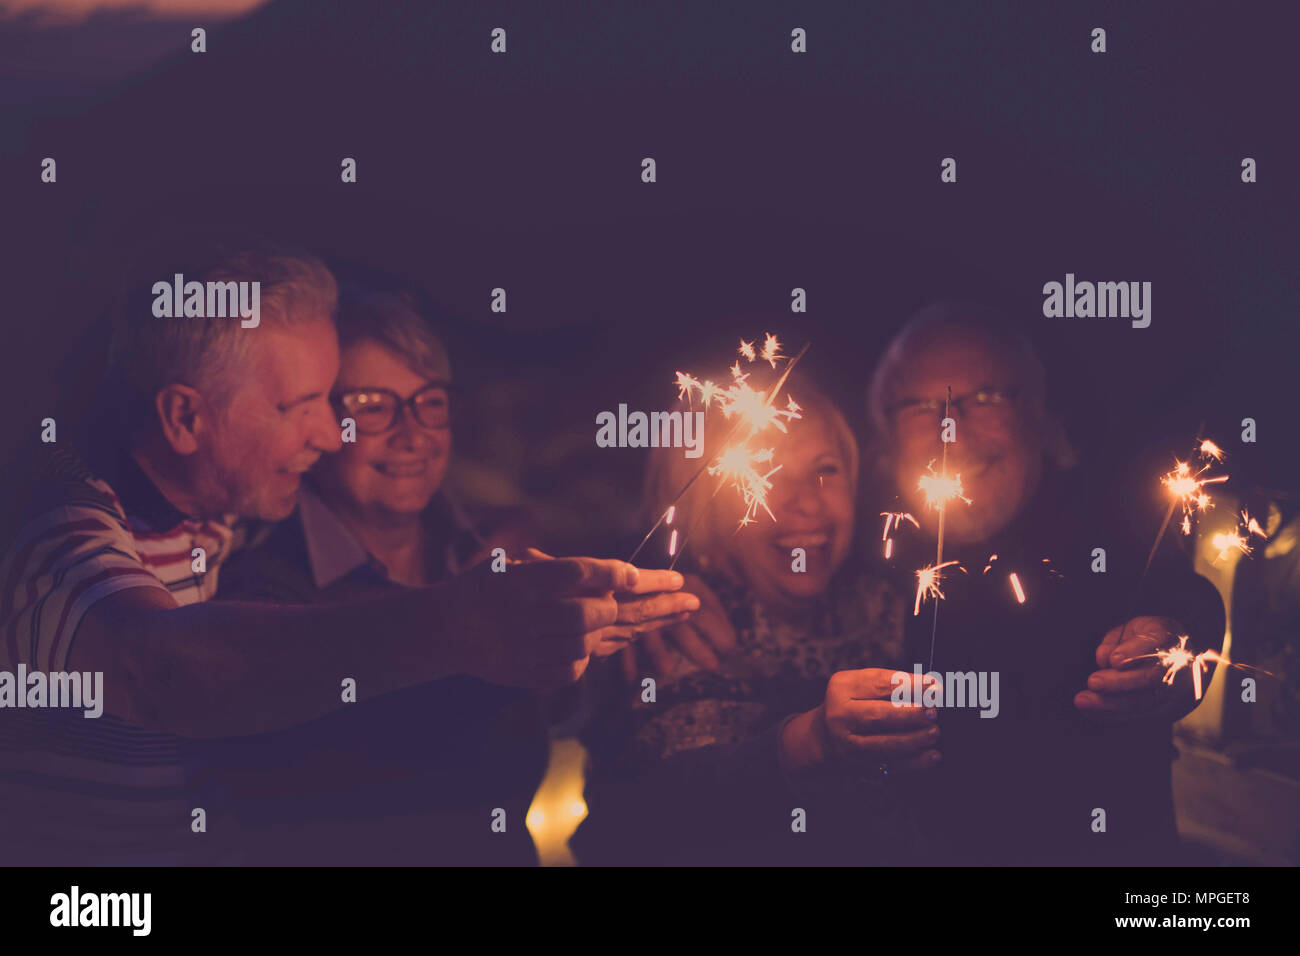 celebration time for party or new year eve for a group of senior friends with fire sparks. averybody together having  fun at night smiling and laughin - Stock Image